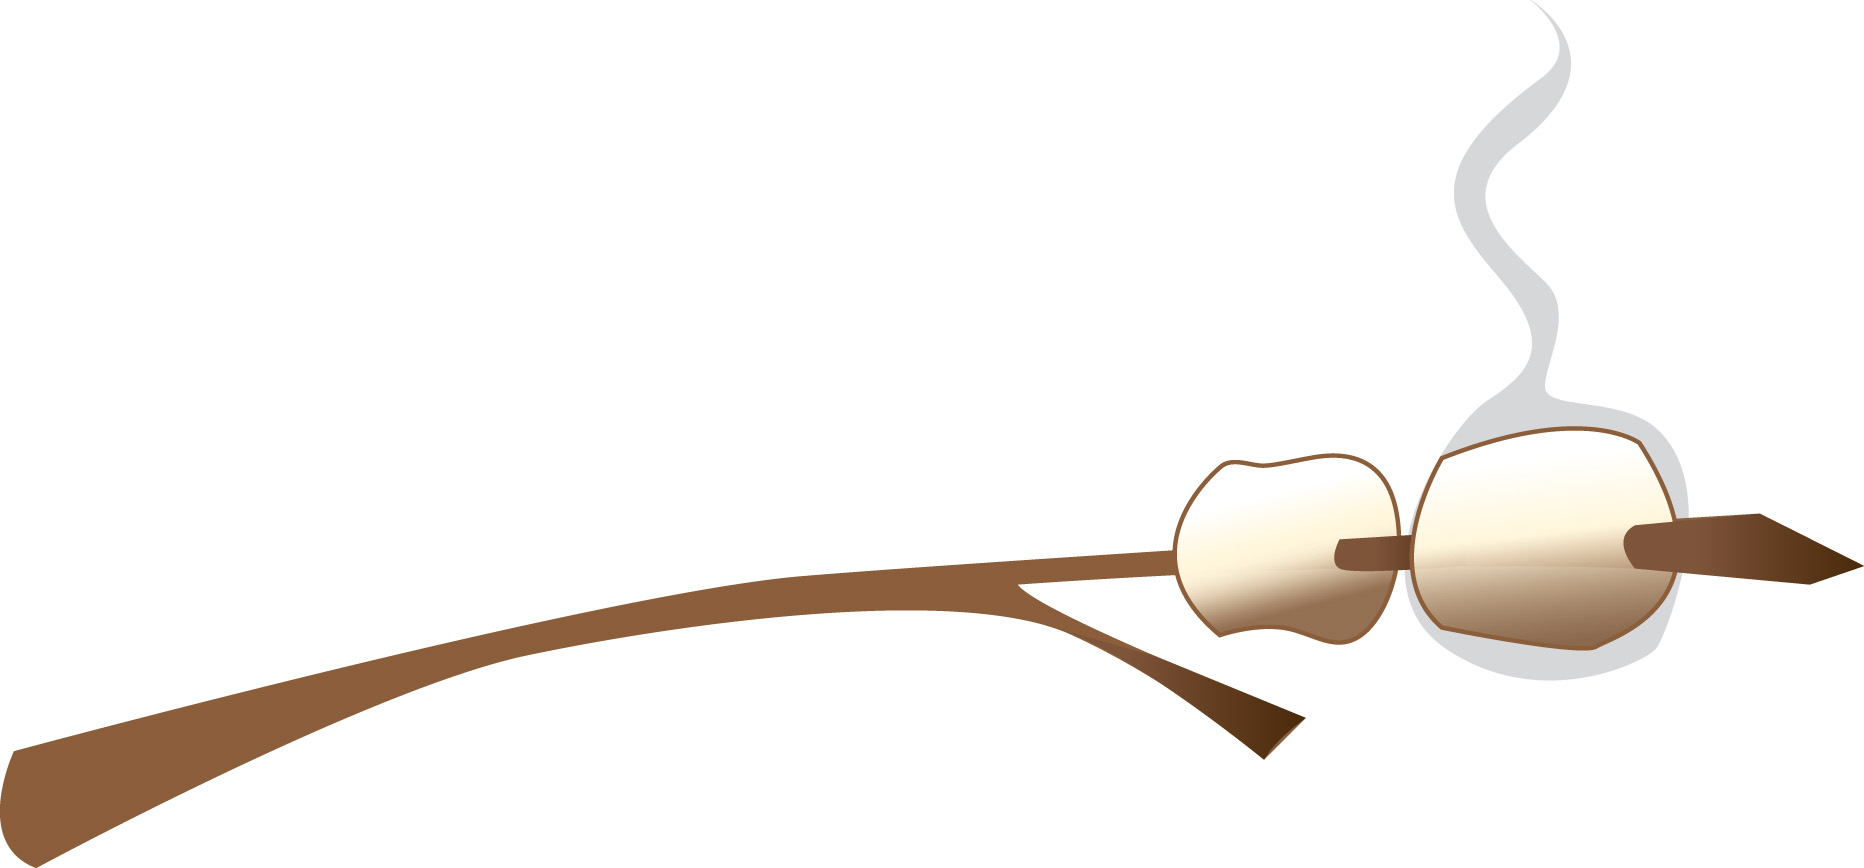 Marshmallow clipart free image royalty free Free Marshmallow Cliparts, Download Free Clip Art, Free Clip ... image royalty free